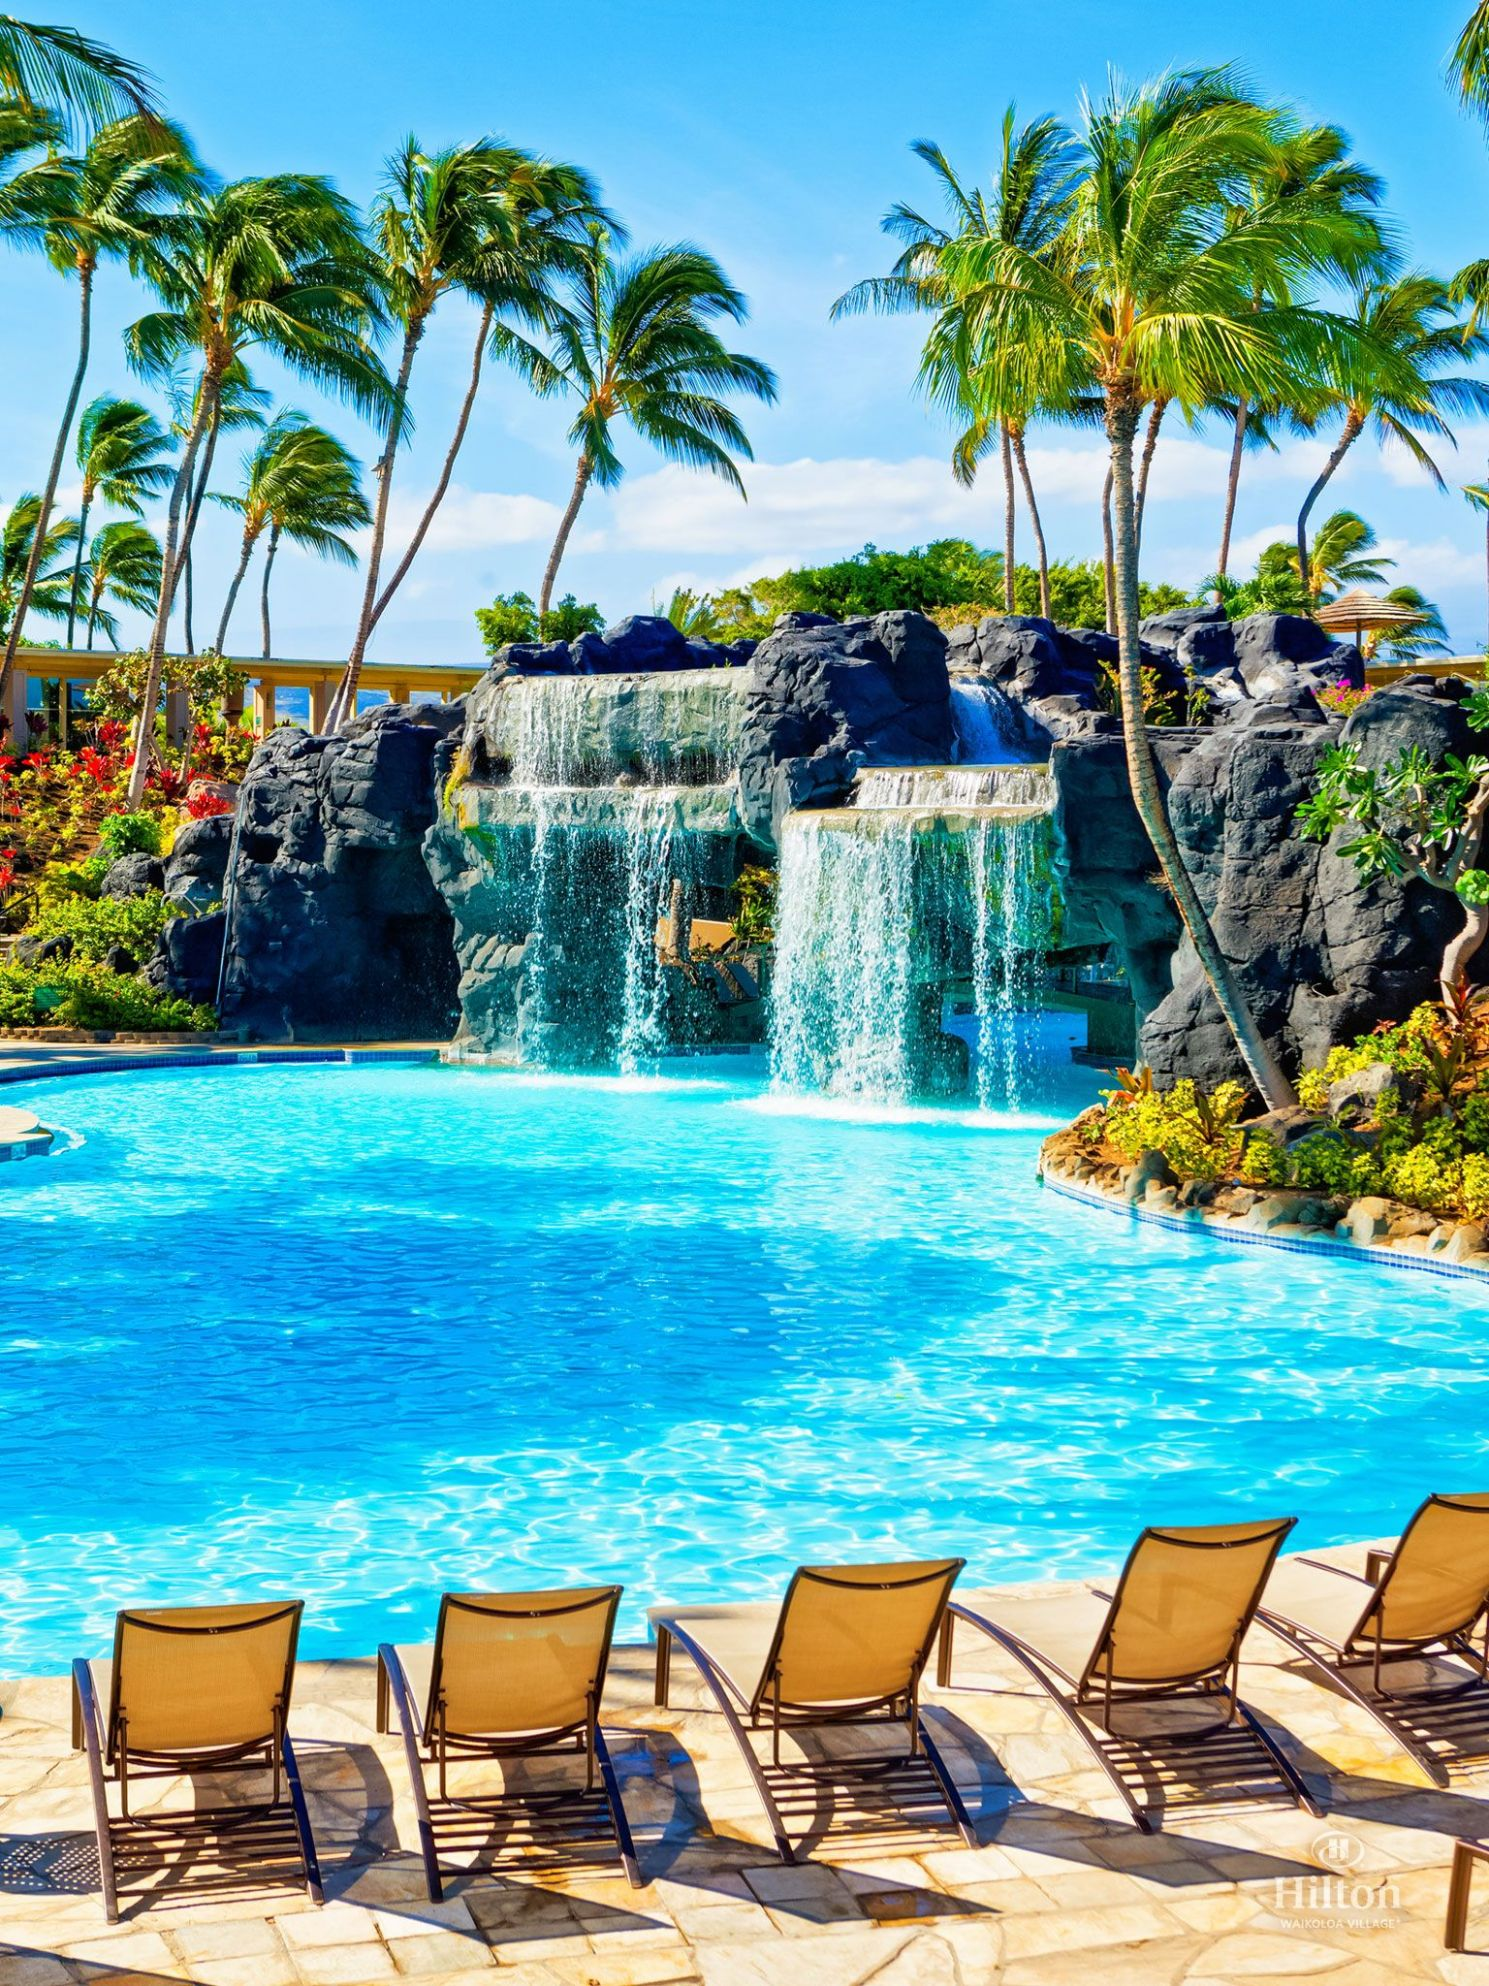 Swim under the waterfall to reach the water slide and whirlpool at ..